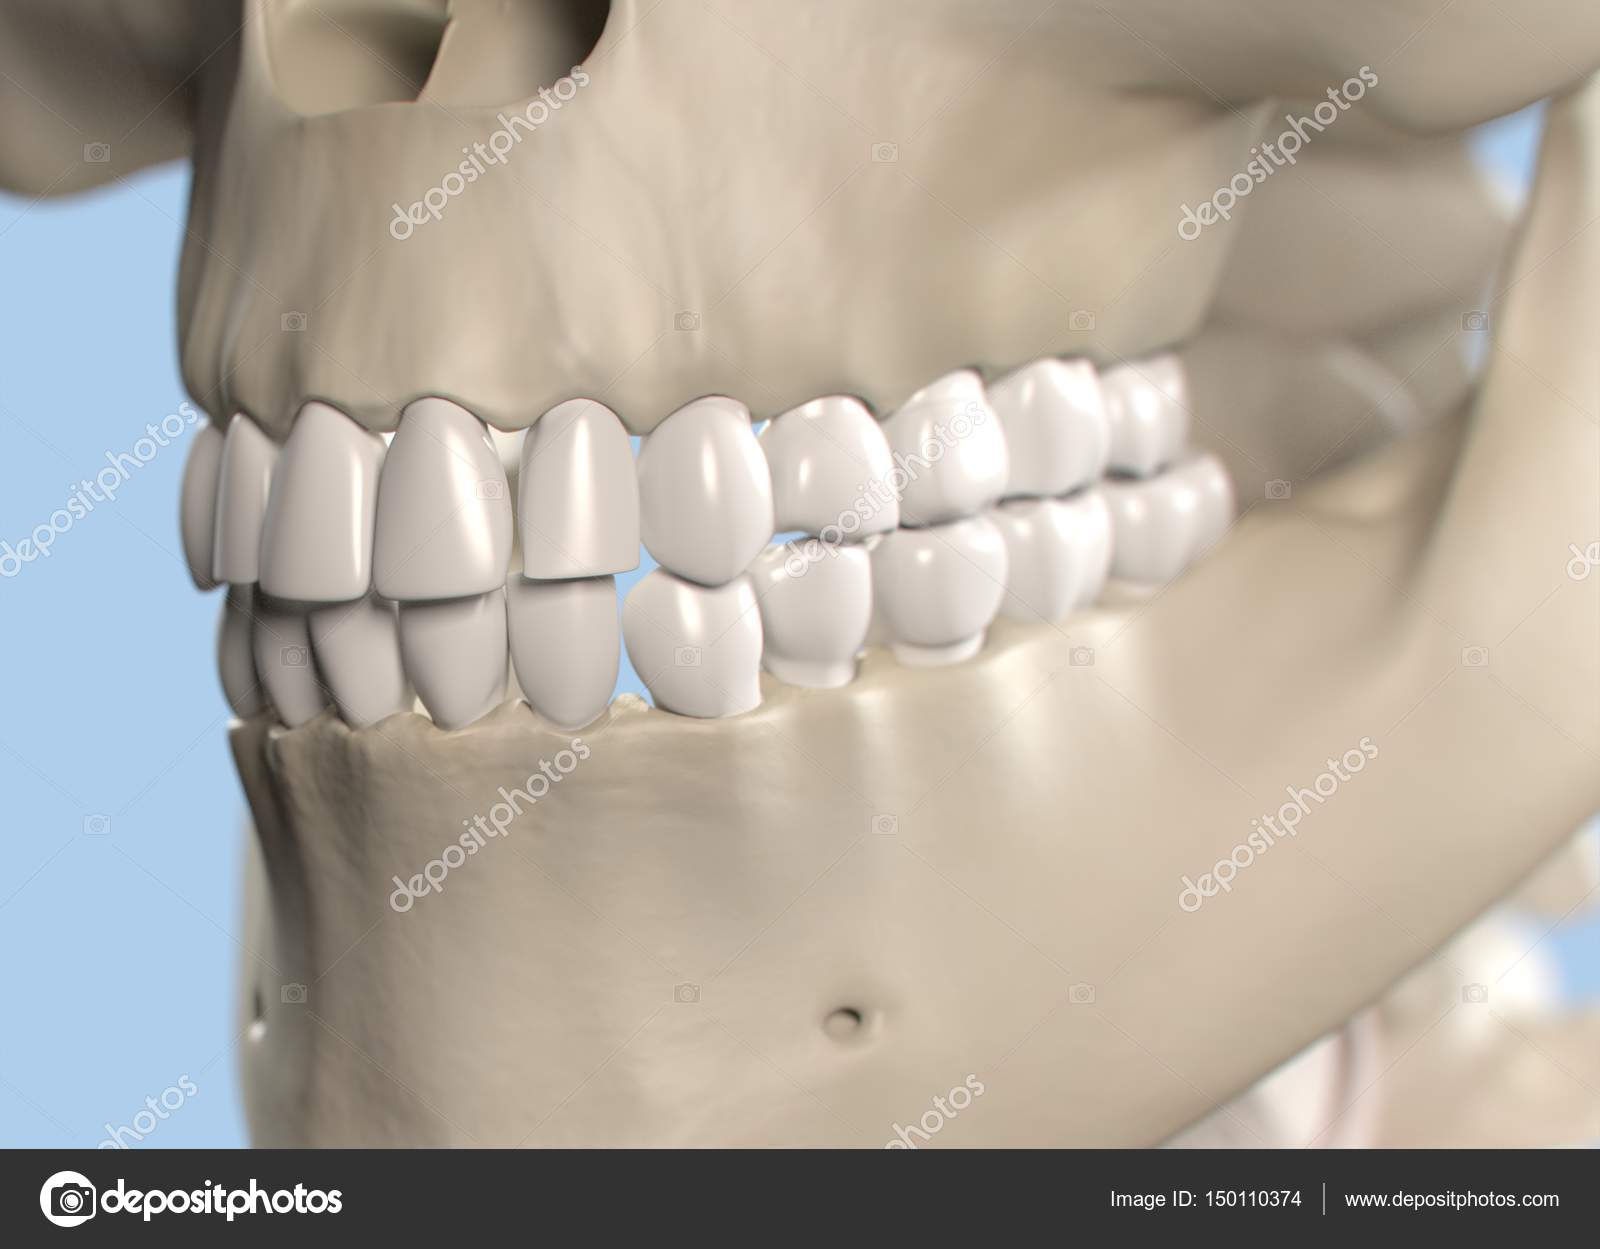 Human teeth anatomy model — Stock Photo © AnatomyInsider #150110374